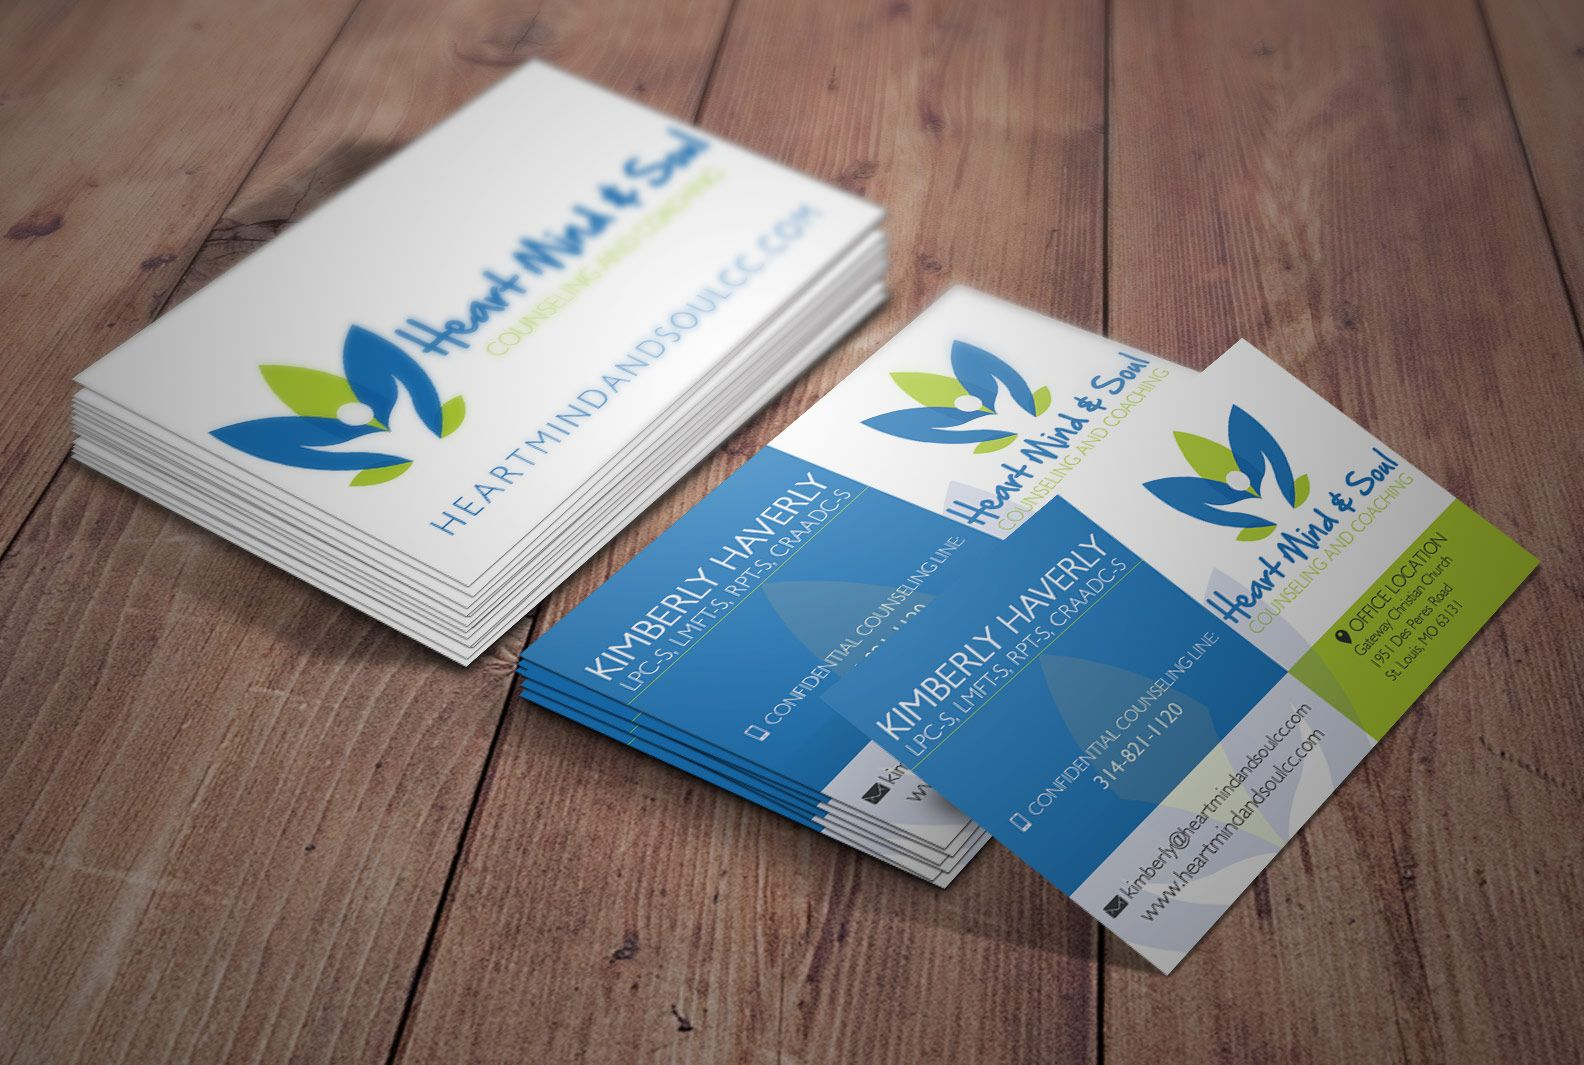 Custom designed therapist business cards and logo created by custom designed therapist business cards and logo created by ignite therapy sites ignitetherapysites therapistlogo logos counselor counselorlogos colourmoves